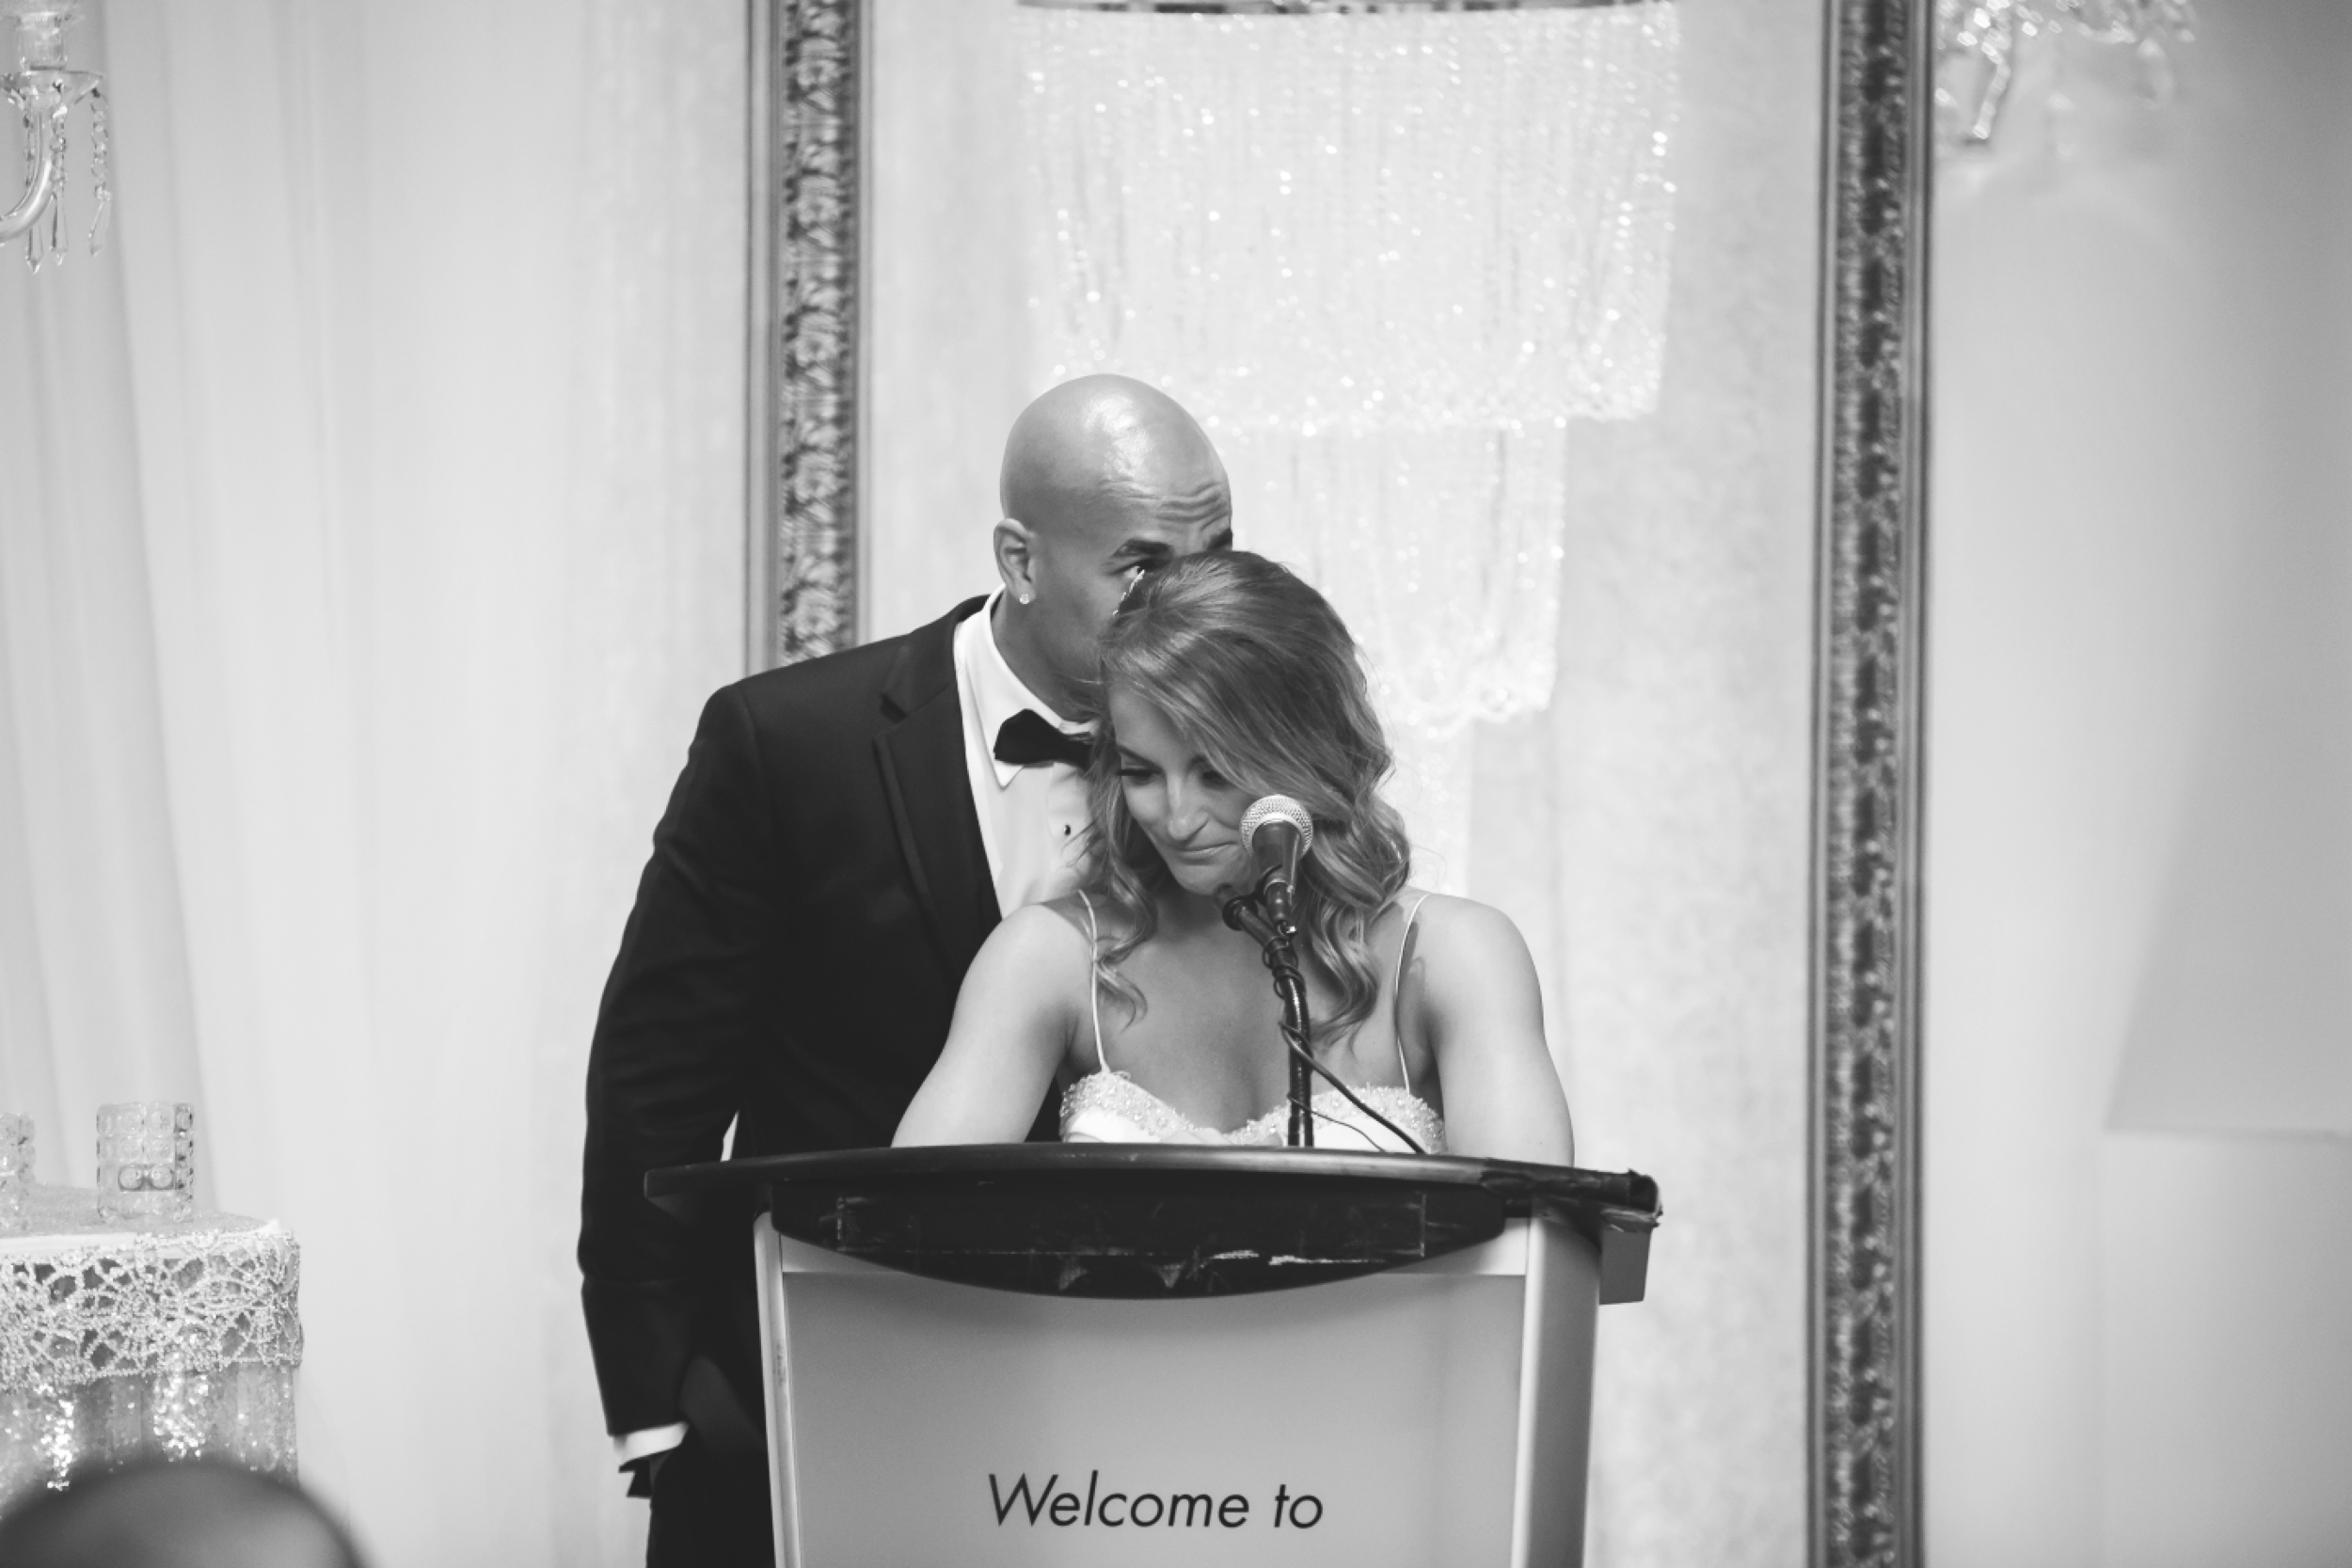 Wedding-Burlington-Convention-Center-Burlington-Oakville-Toronto-Hamilton-Niagara-Wedding-Photographer-Photography-Moments-by-Lauren-Photo-Image-65.png